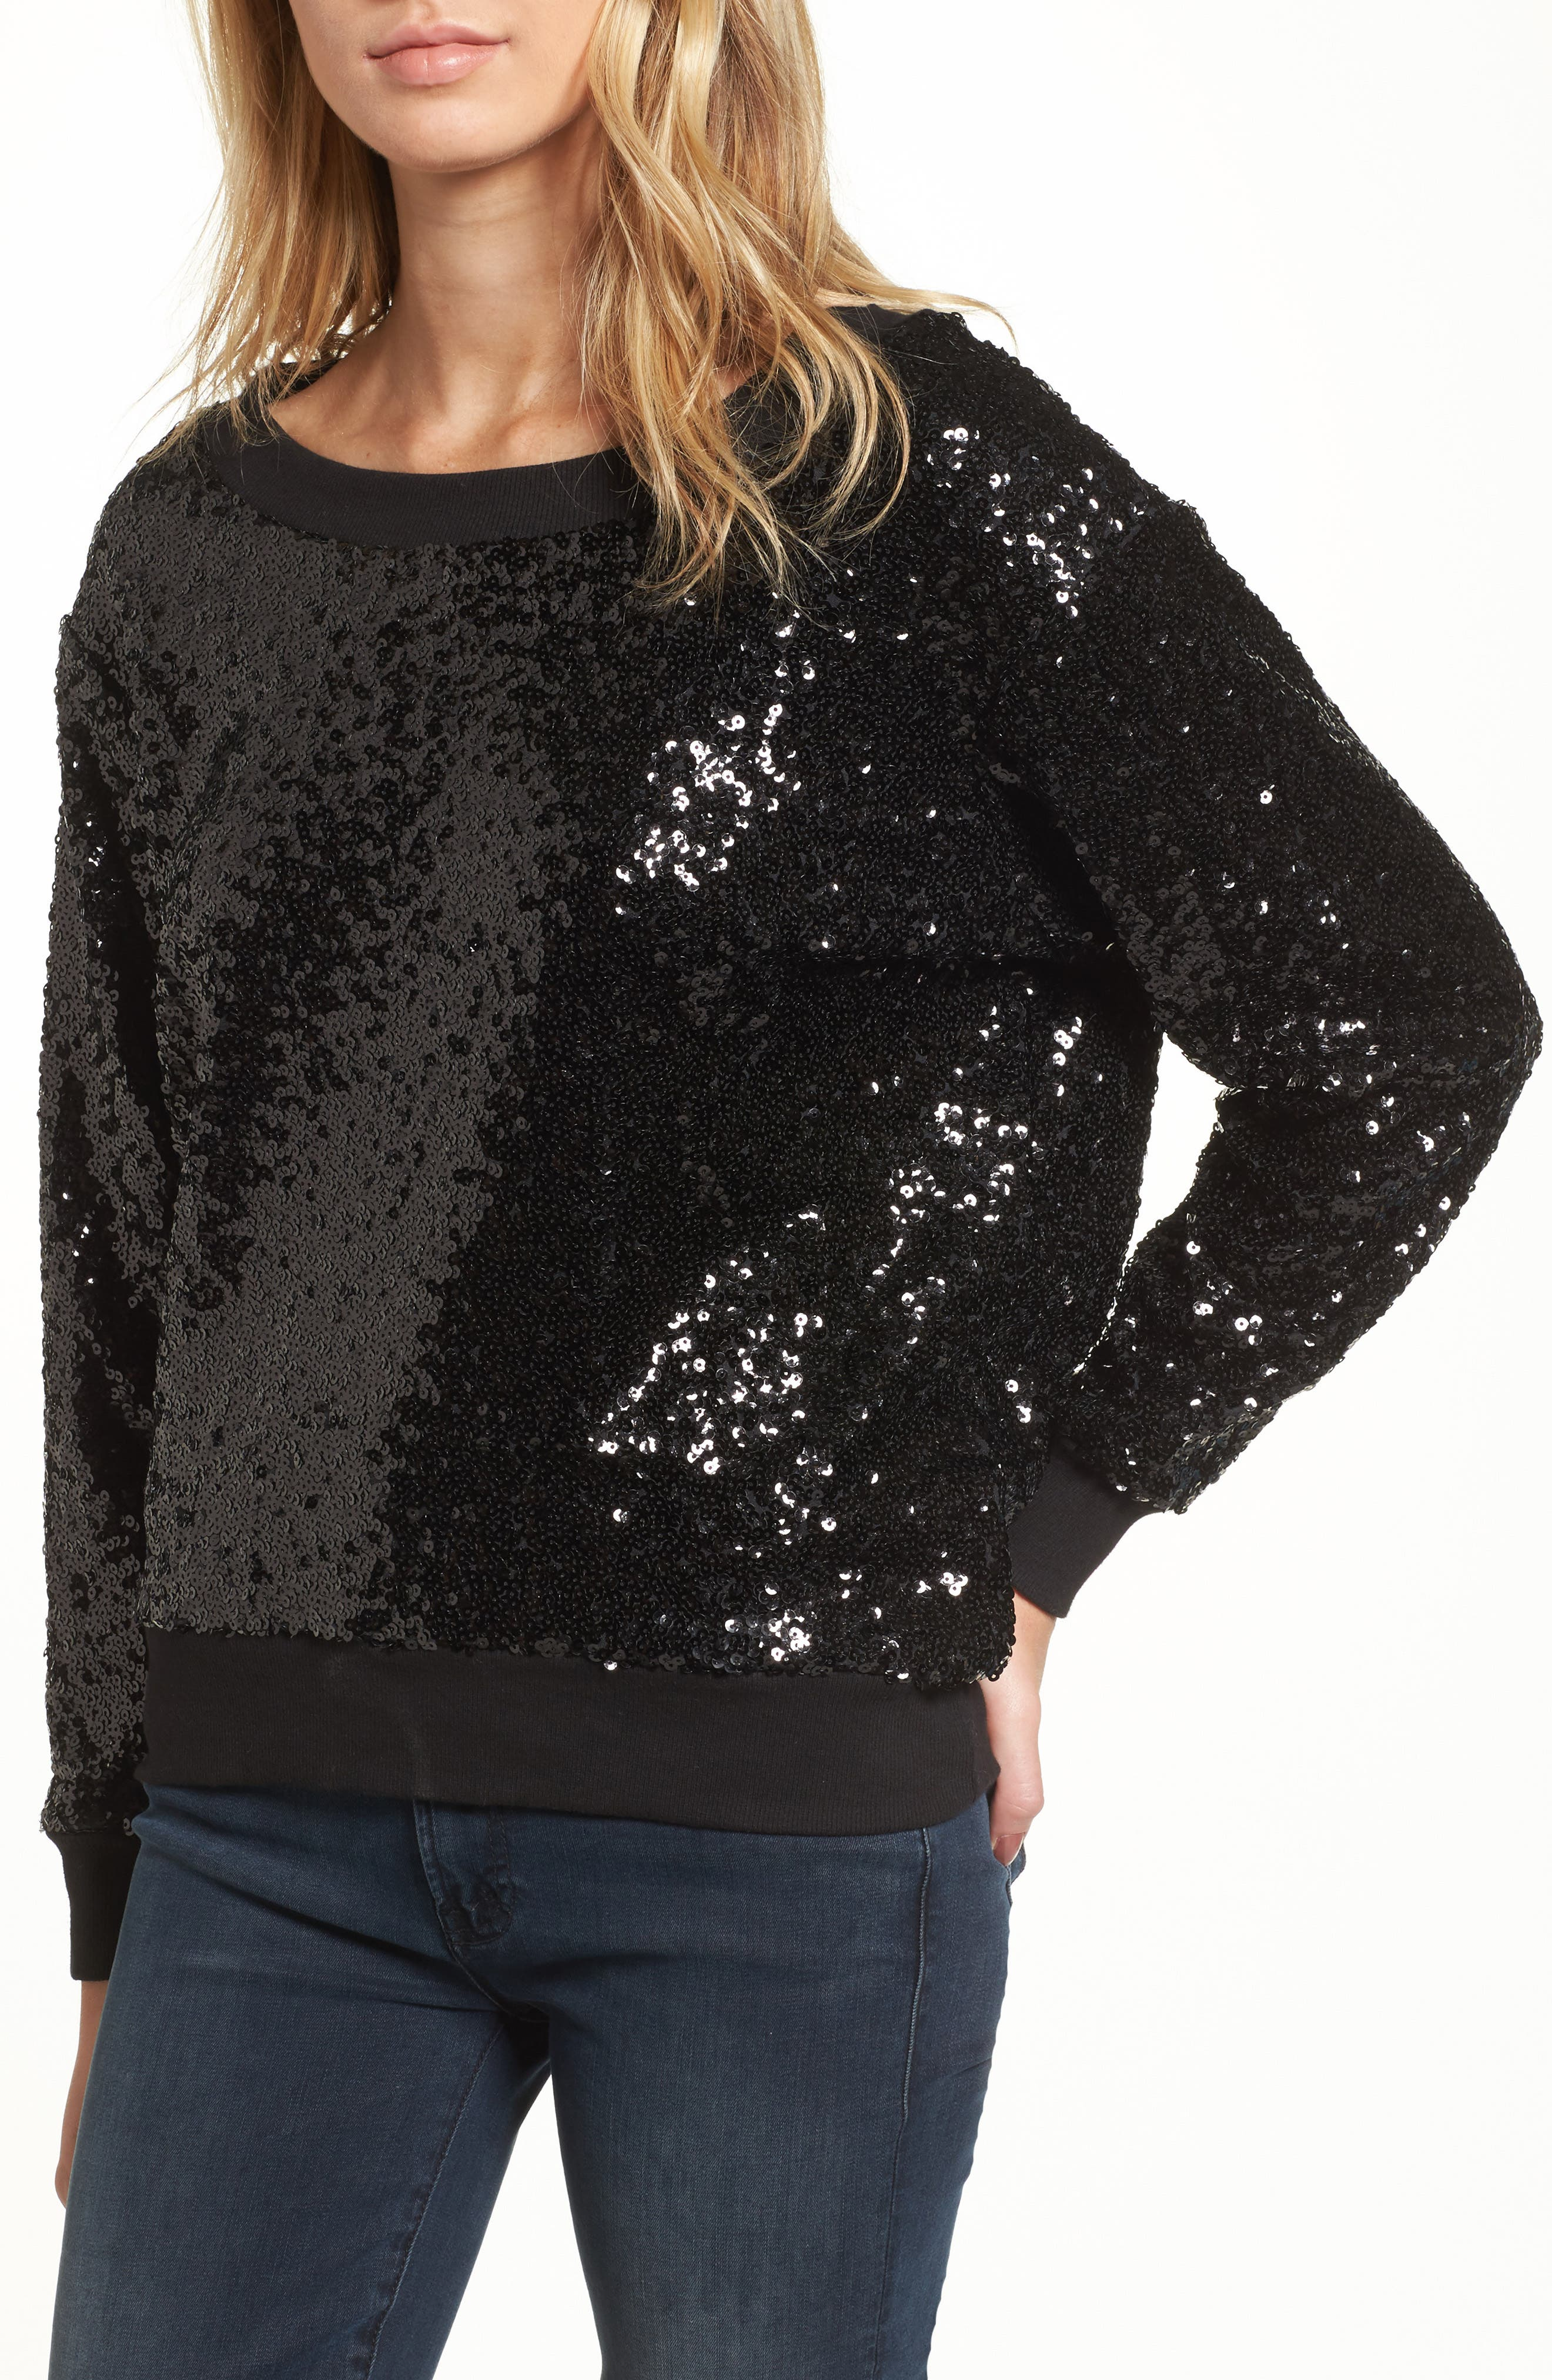 Sequin Sweatshirt,                             Main thumbnail 1, color,                             Black